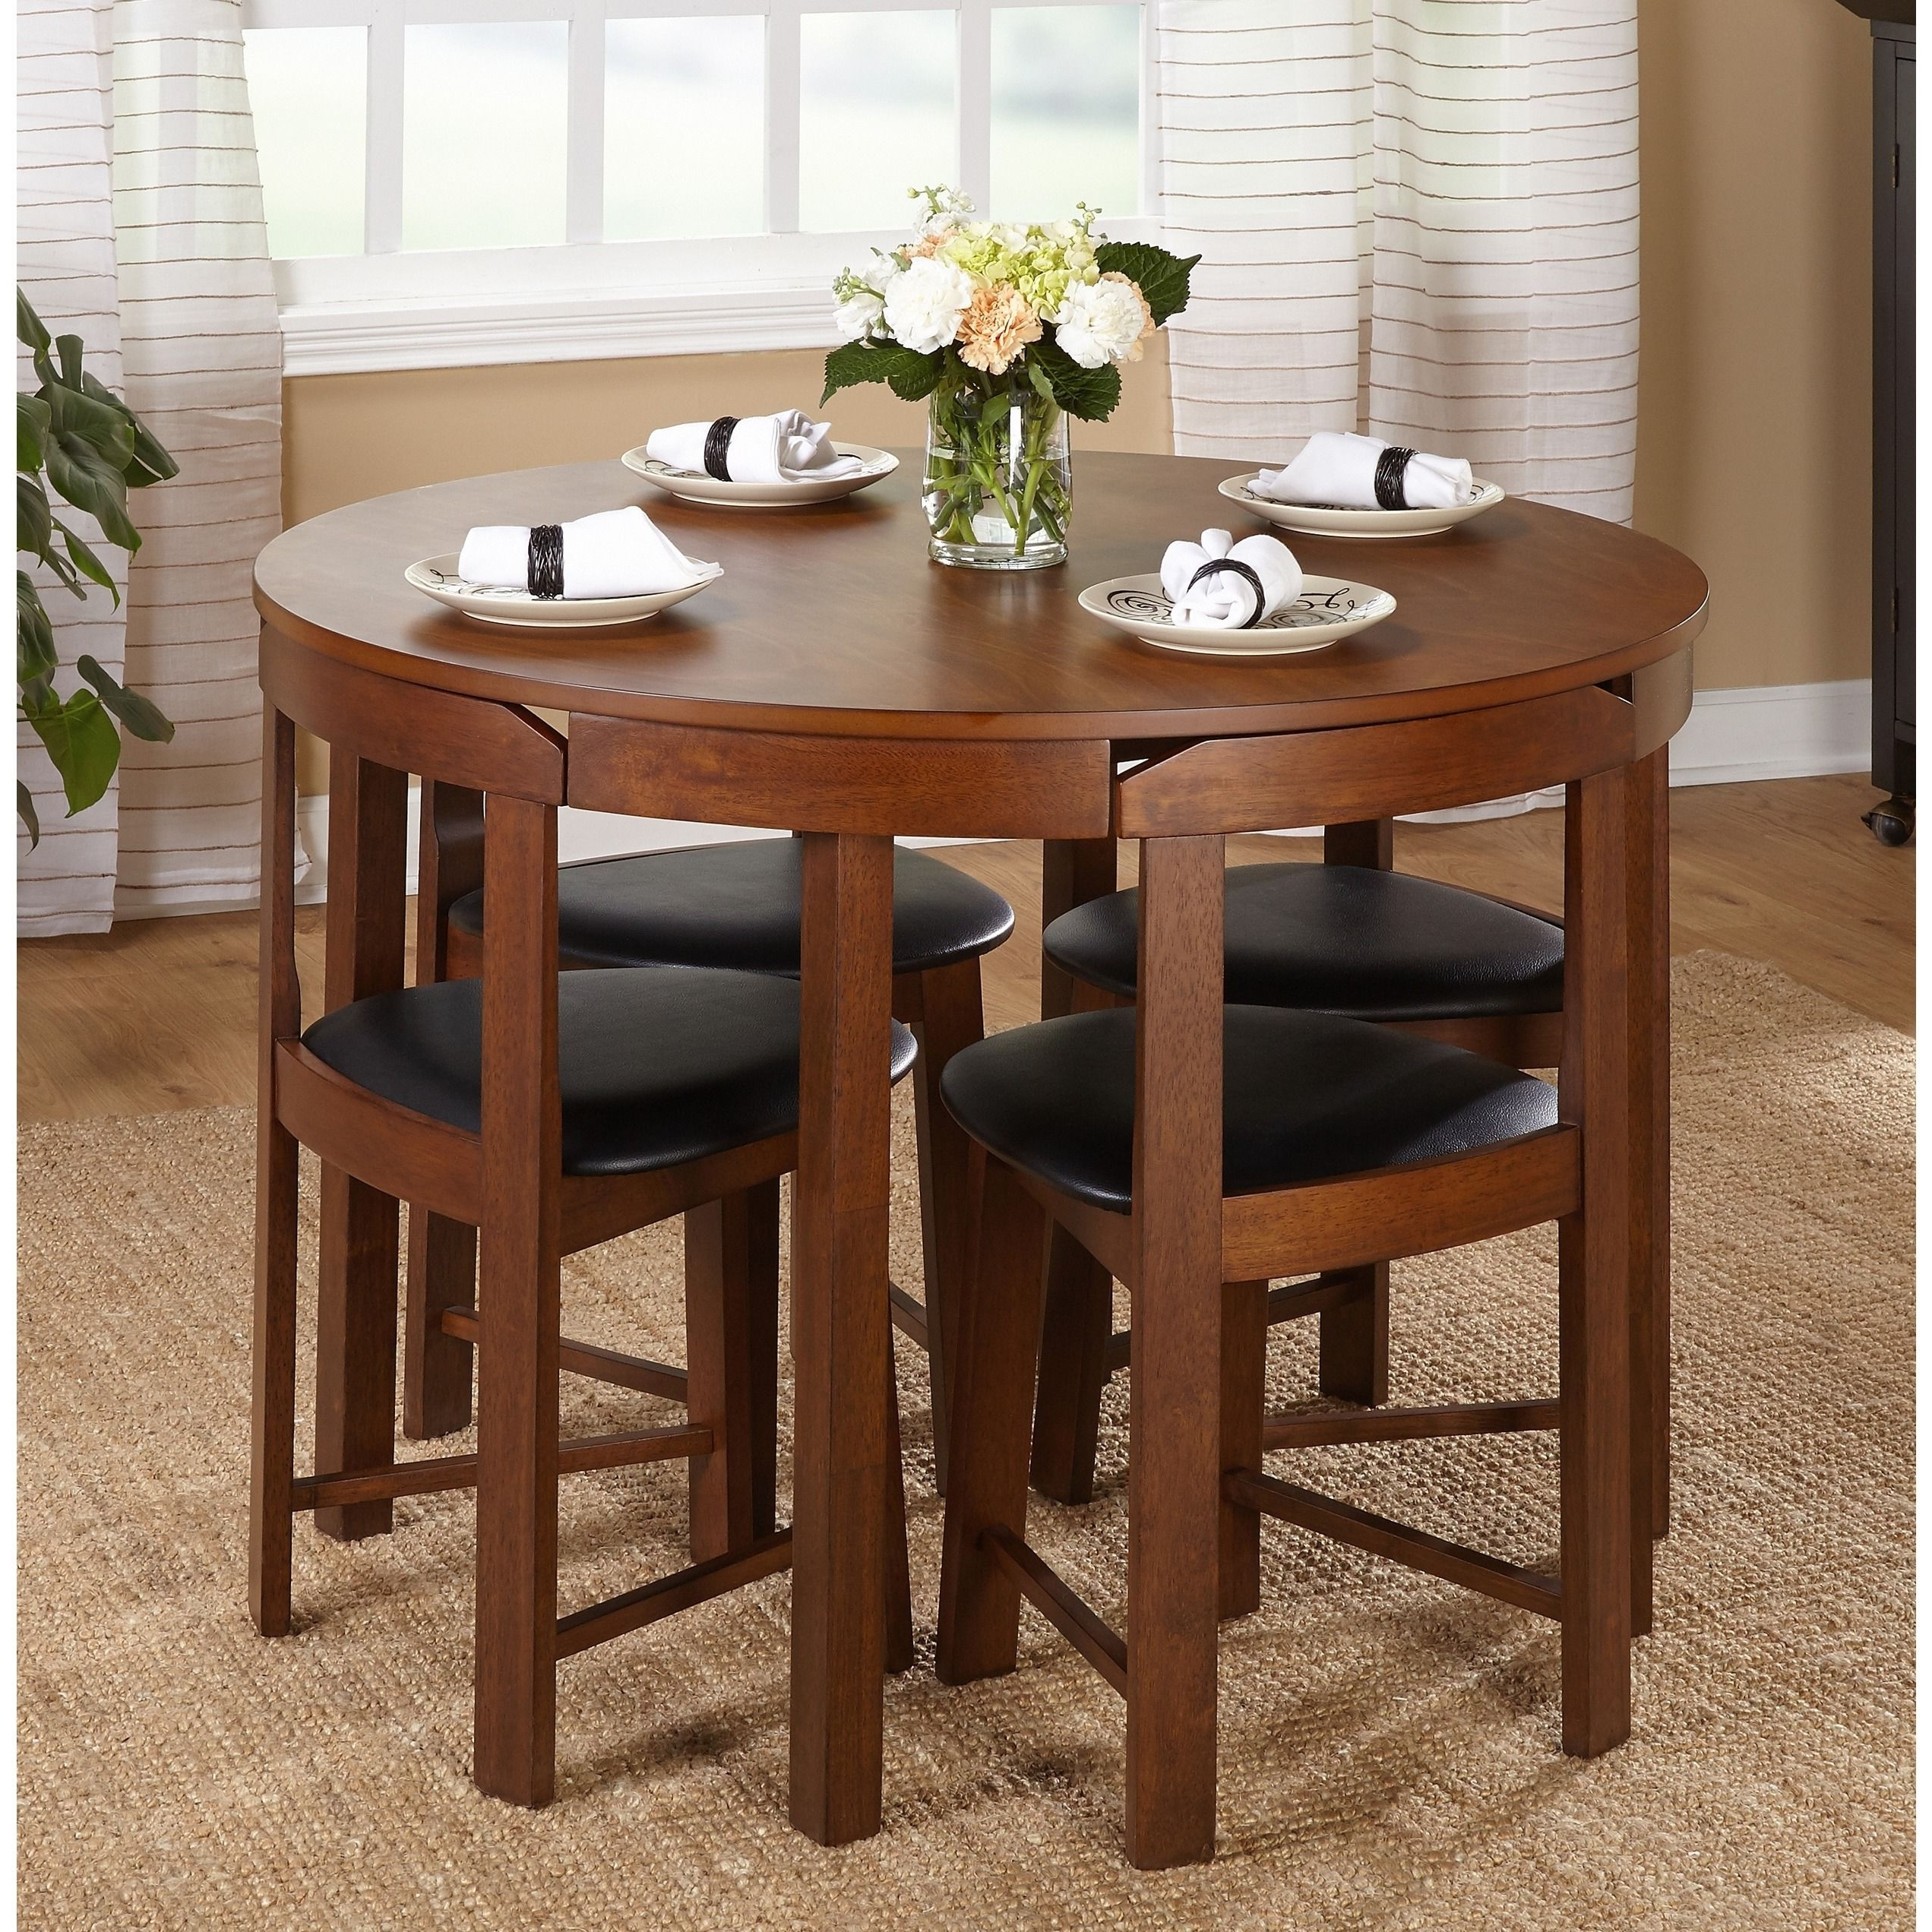 Preferred Valencia 5 Piece 60 Inch Round Dining Sets Pertaining To The 5 Piece Tobey Compact Dining Setsimple Living Offers Four (View 22 of 25)